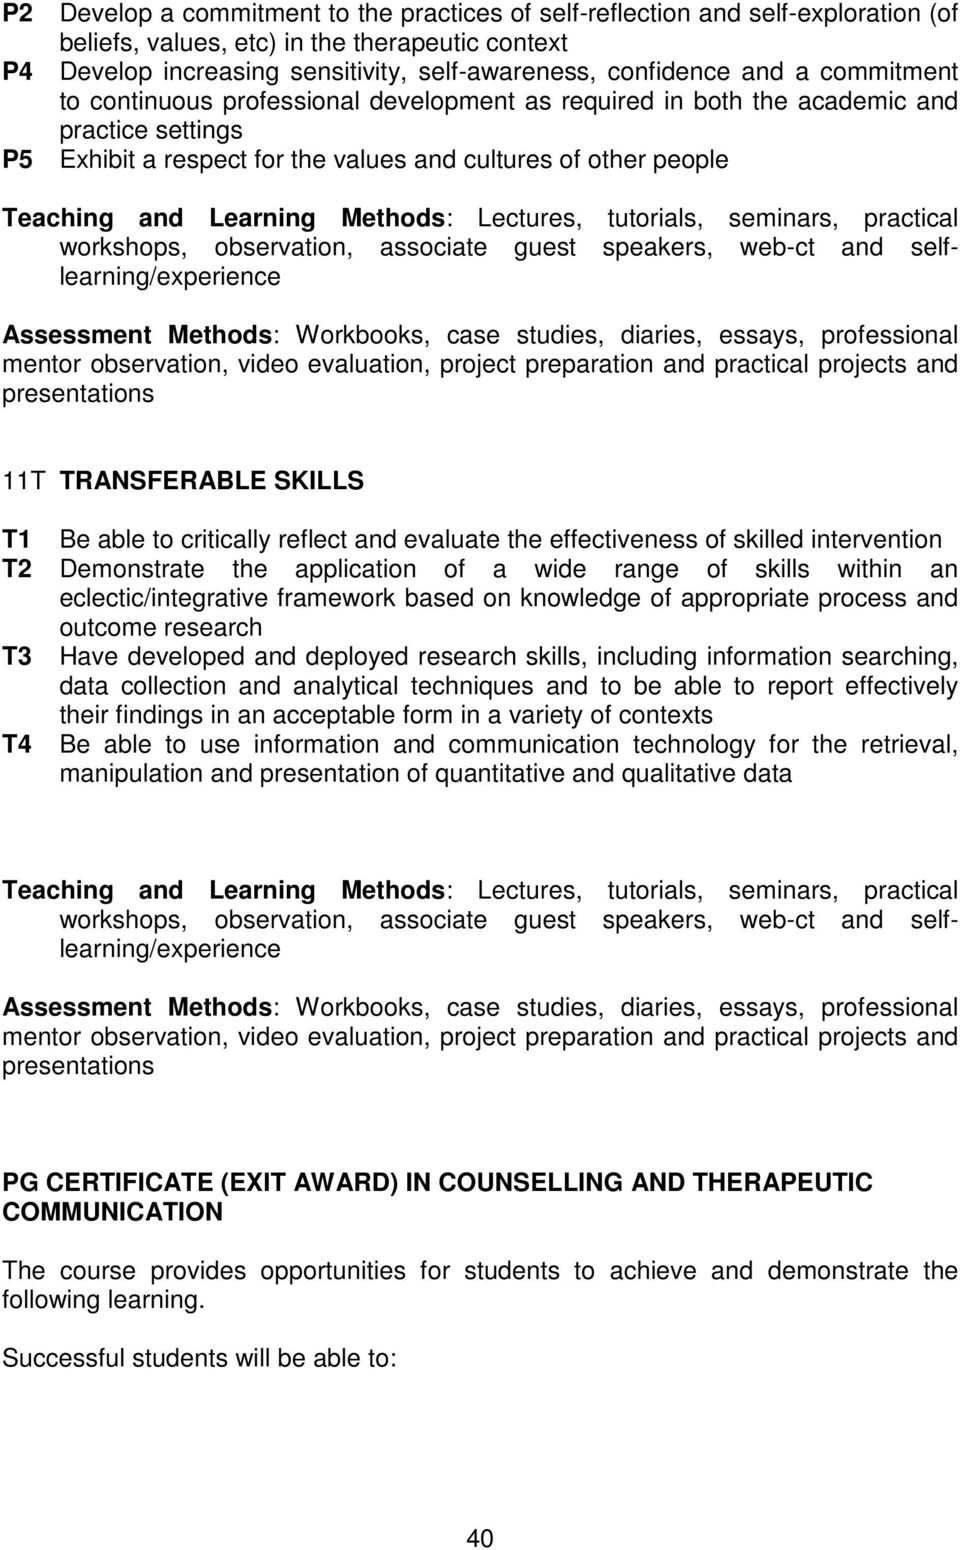 Be able to critically reflect and evaluate the effectiveness of skilled intervention T2 Demonstrate the application of a wide range of skills within an eclectic/integrative framework based on